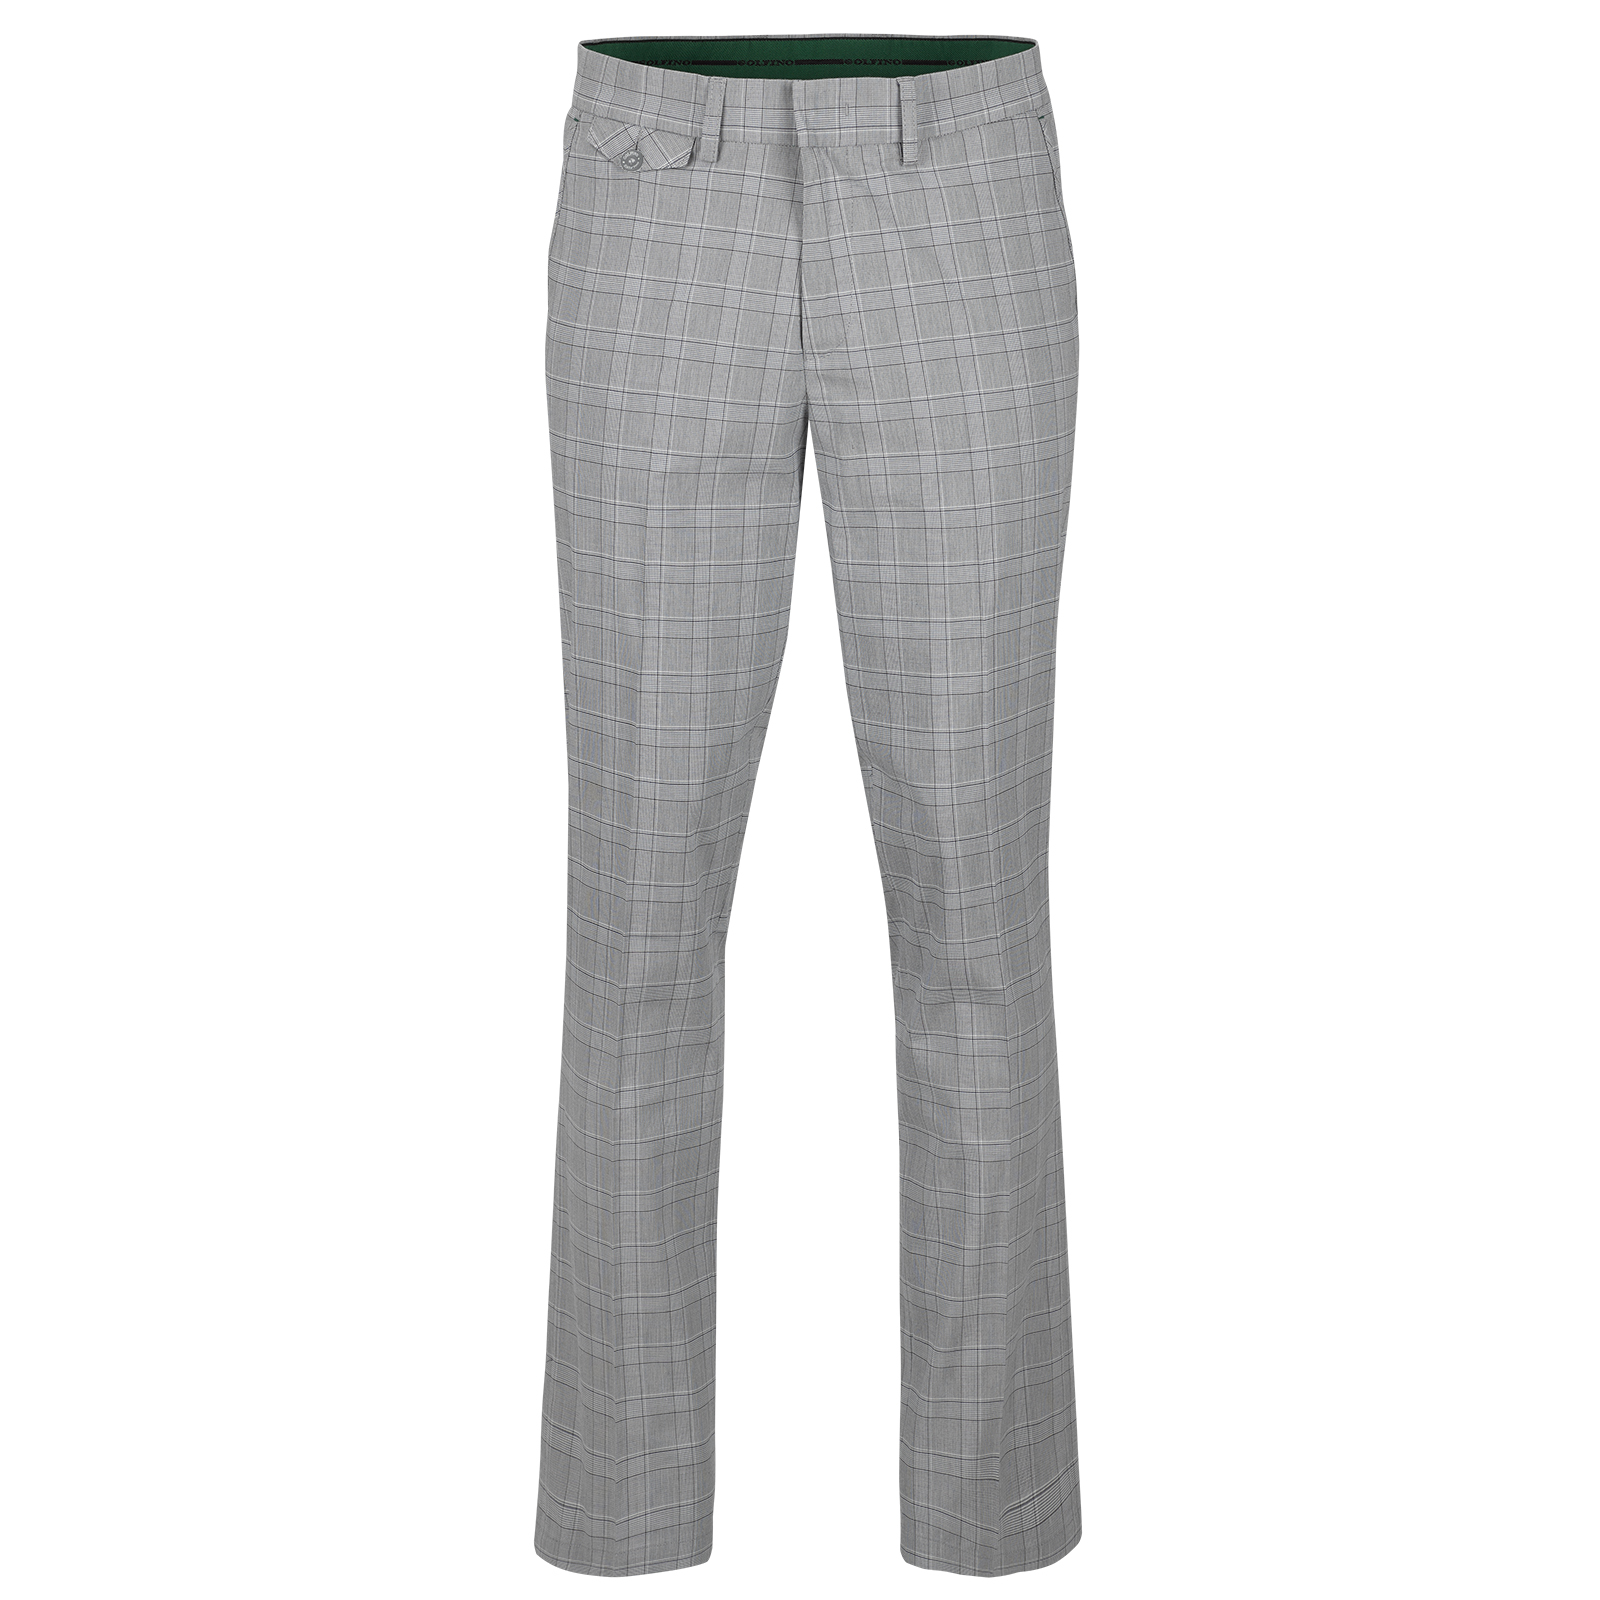 Men's cotton blend chequered golf trousers with slight stretch